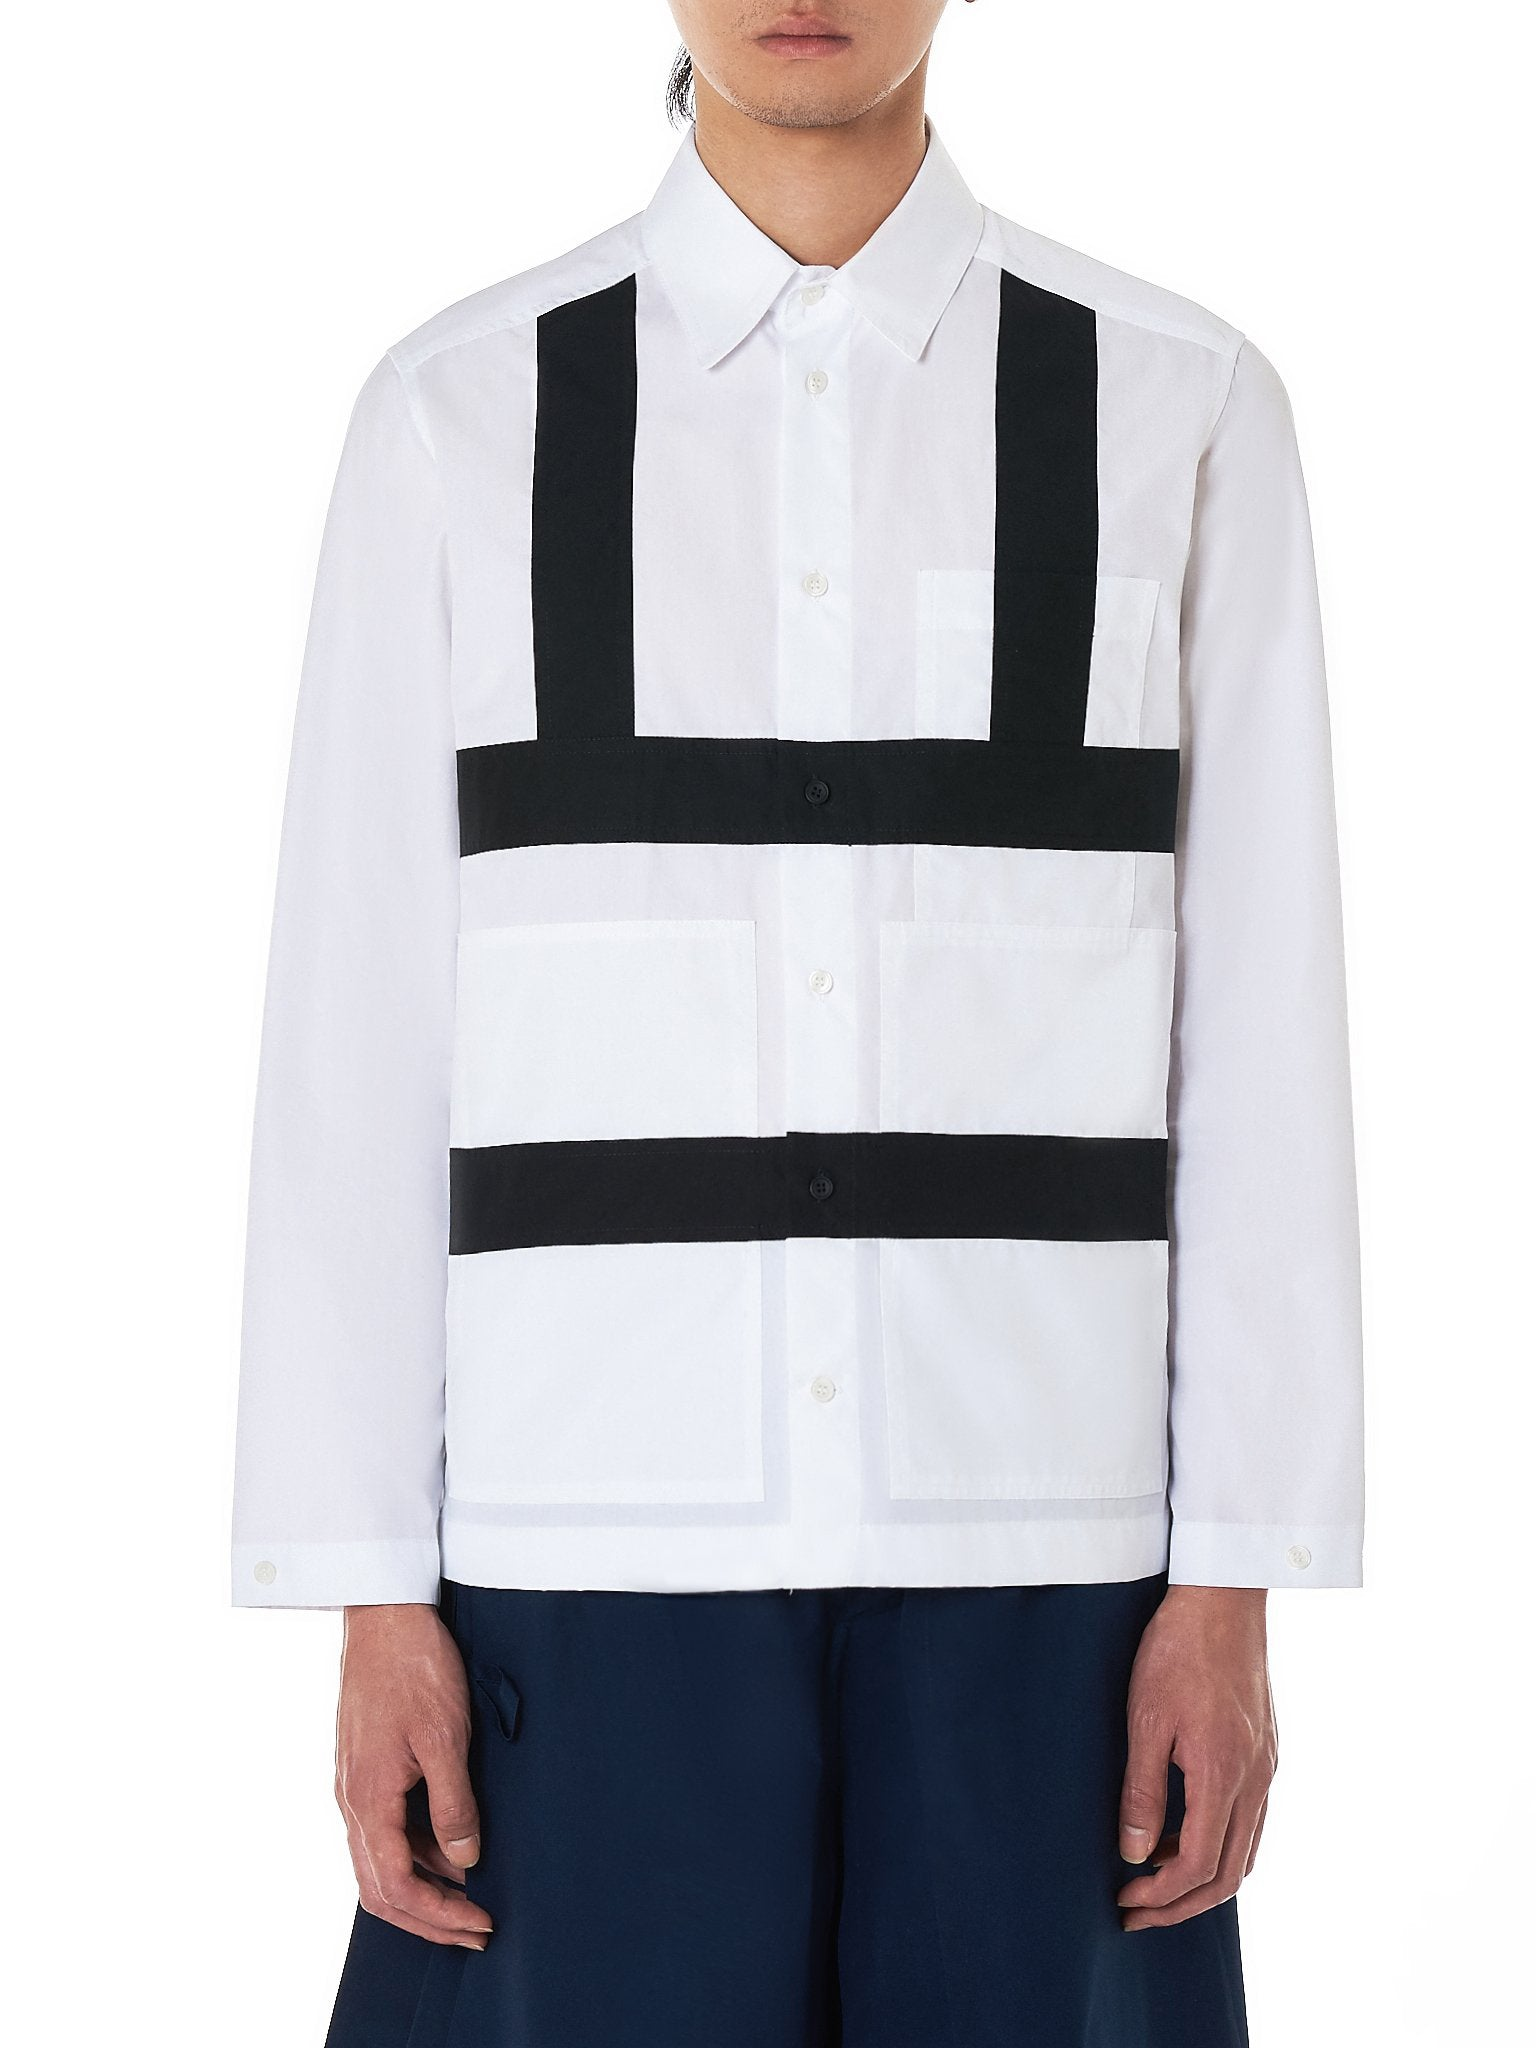 Craig Green Harness Shirt - Hlorenzo Front